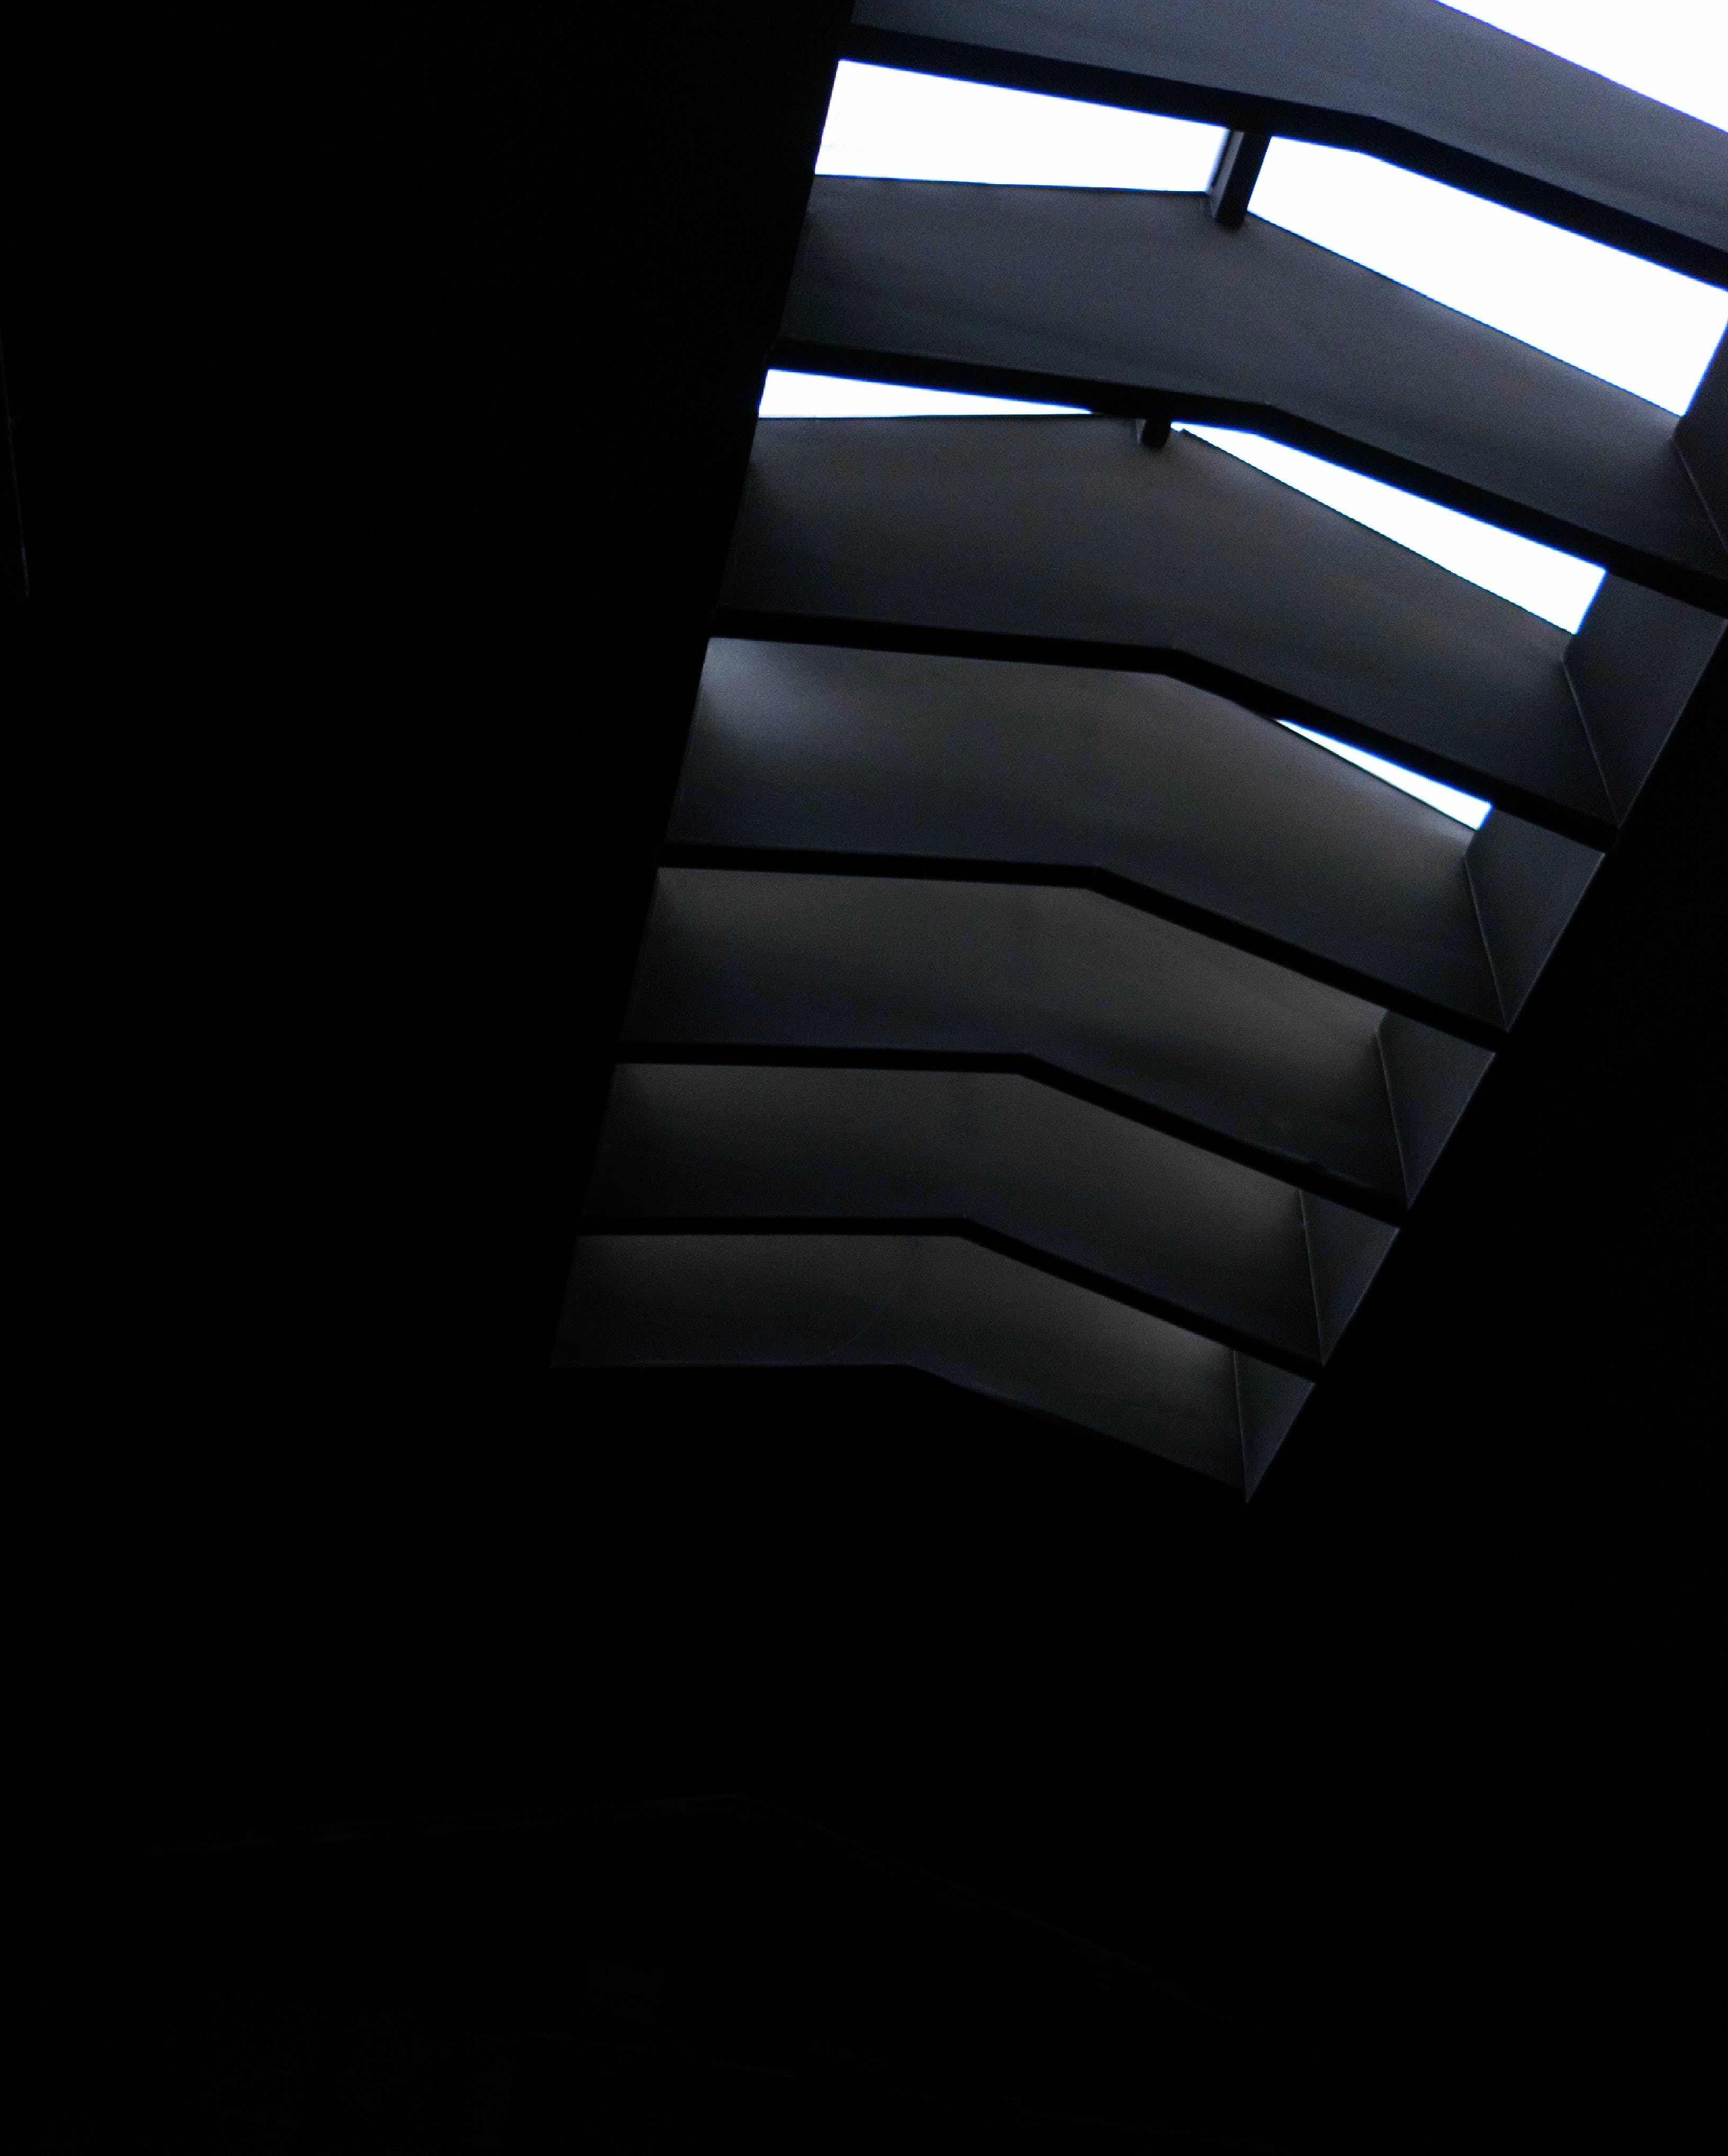 architecture, black and white, ceiling